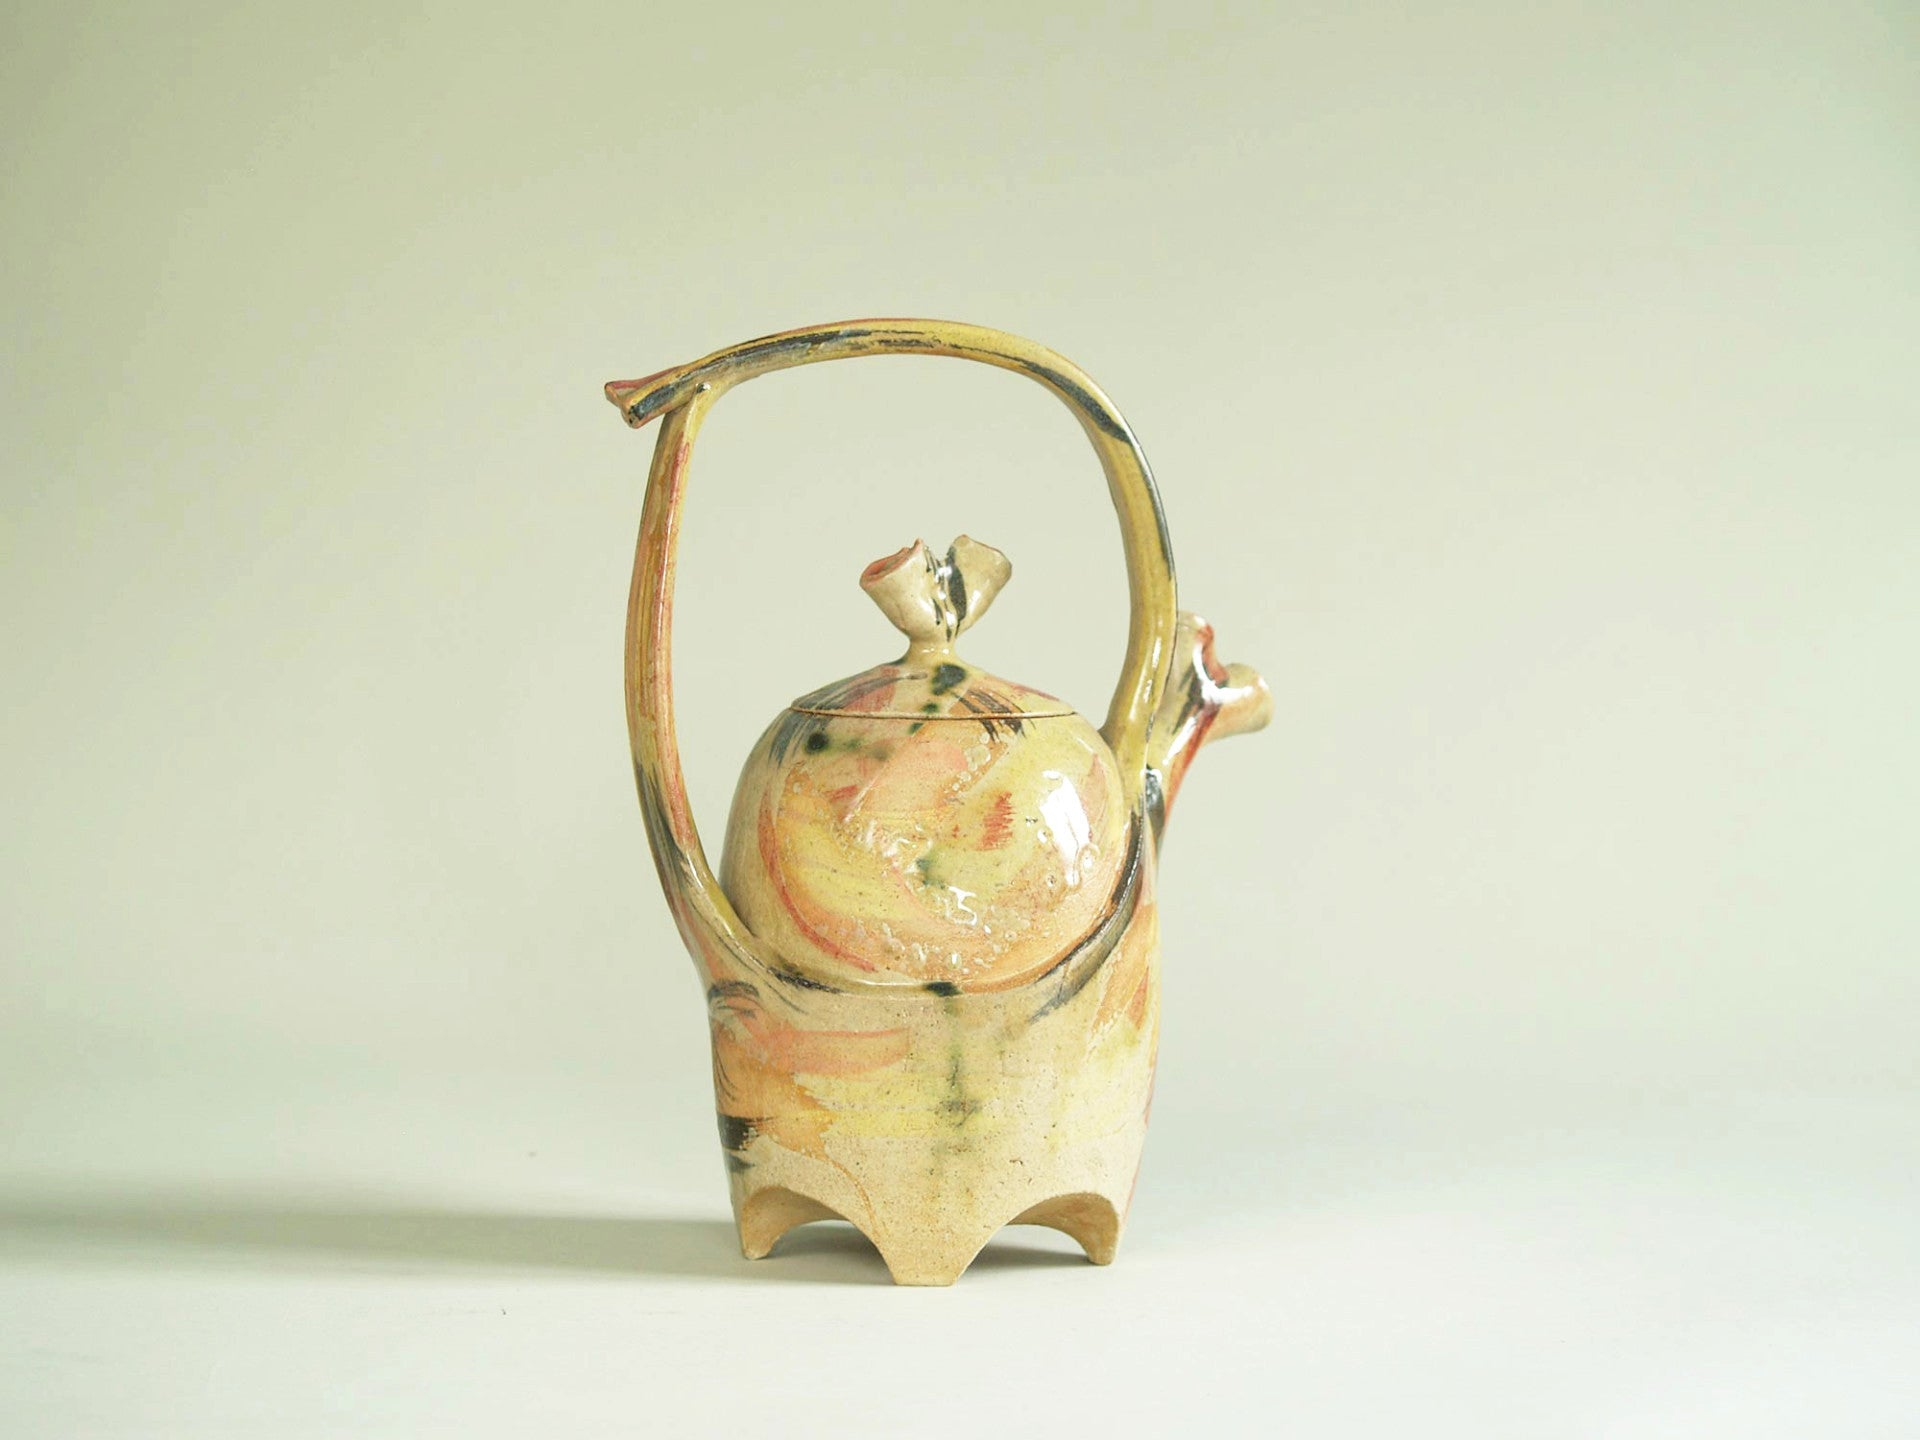 Théière sculpturale en grès, France (vers 1980)..Studio pottery Big Teapot, France (circa 1980)